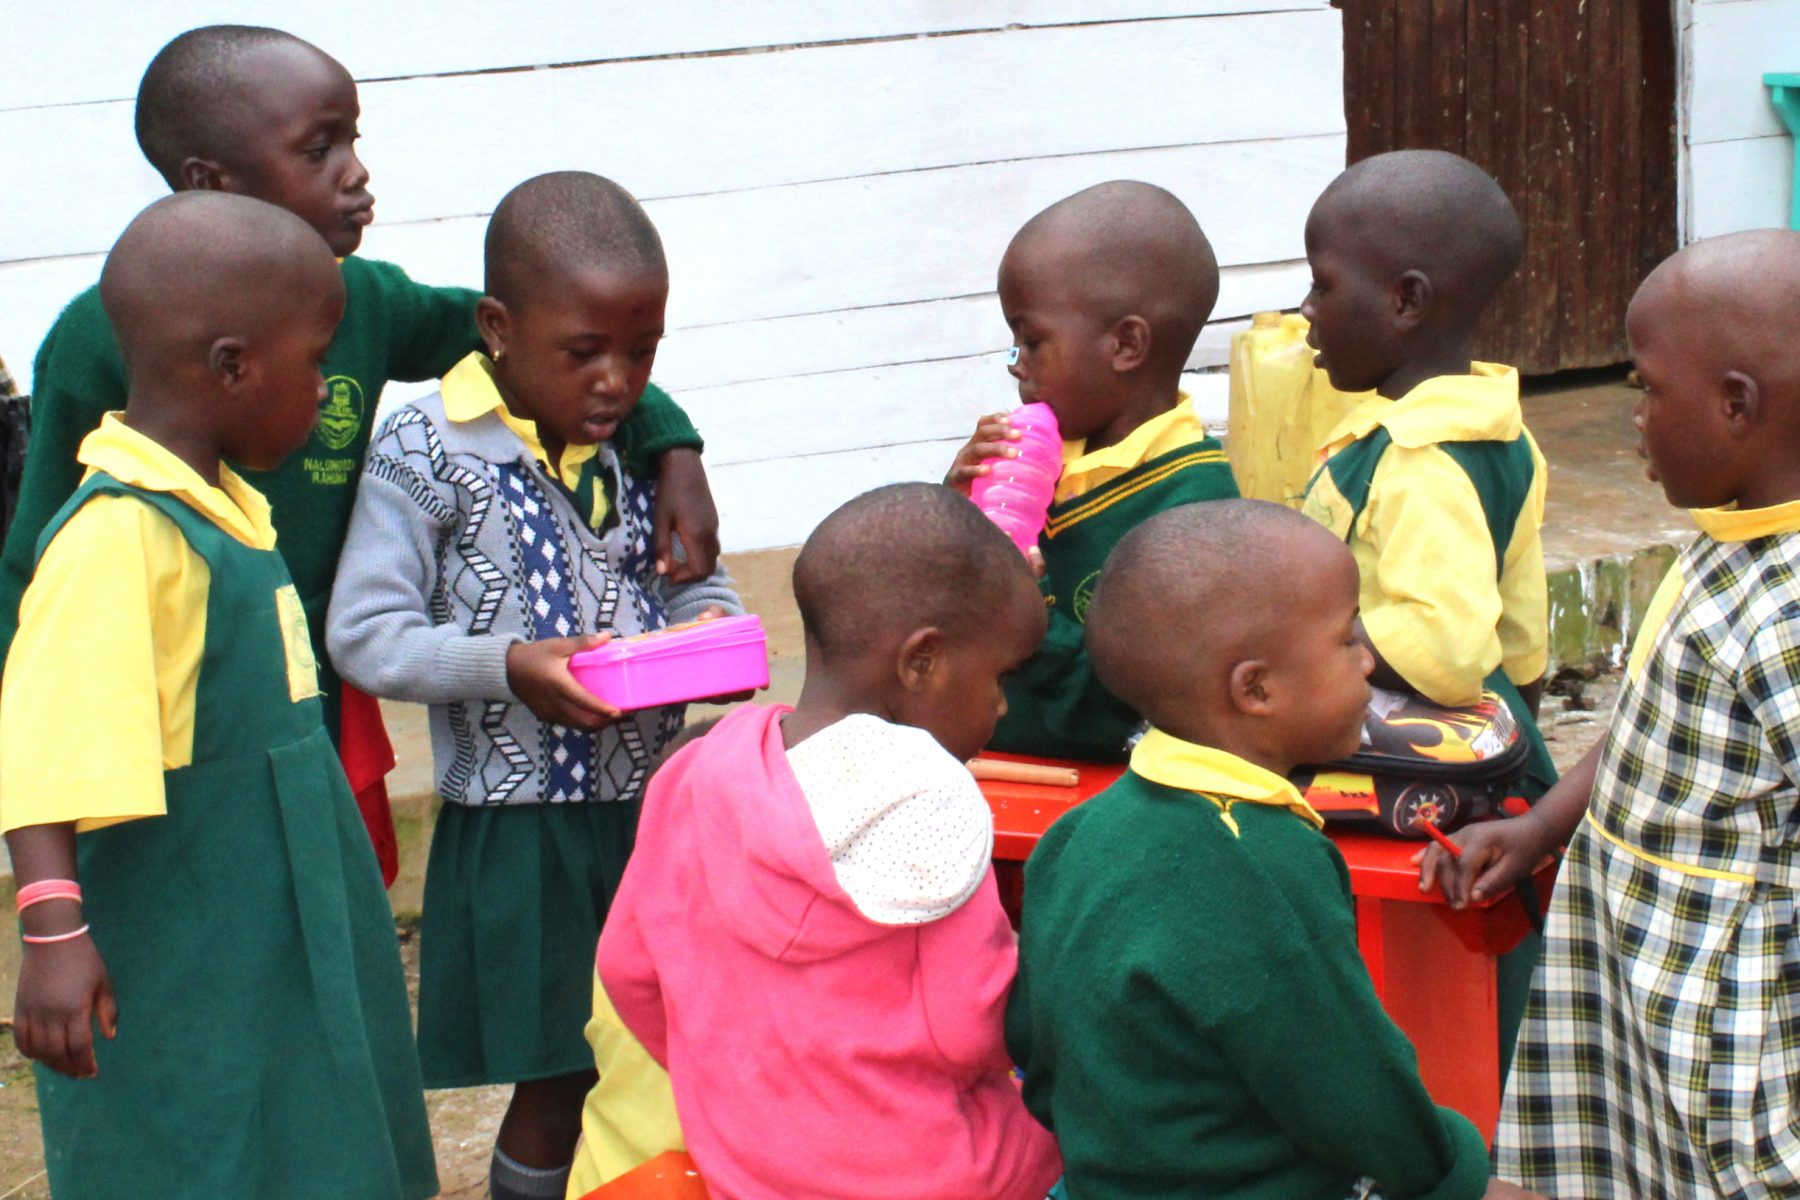 Seven Nursery Students Looing at their New School Supplies